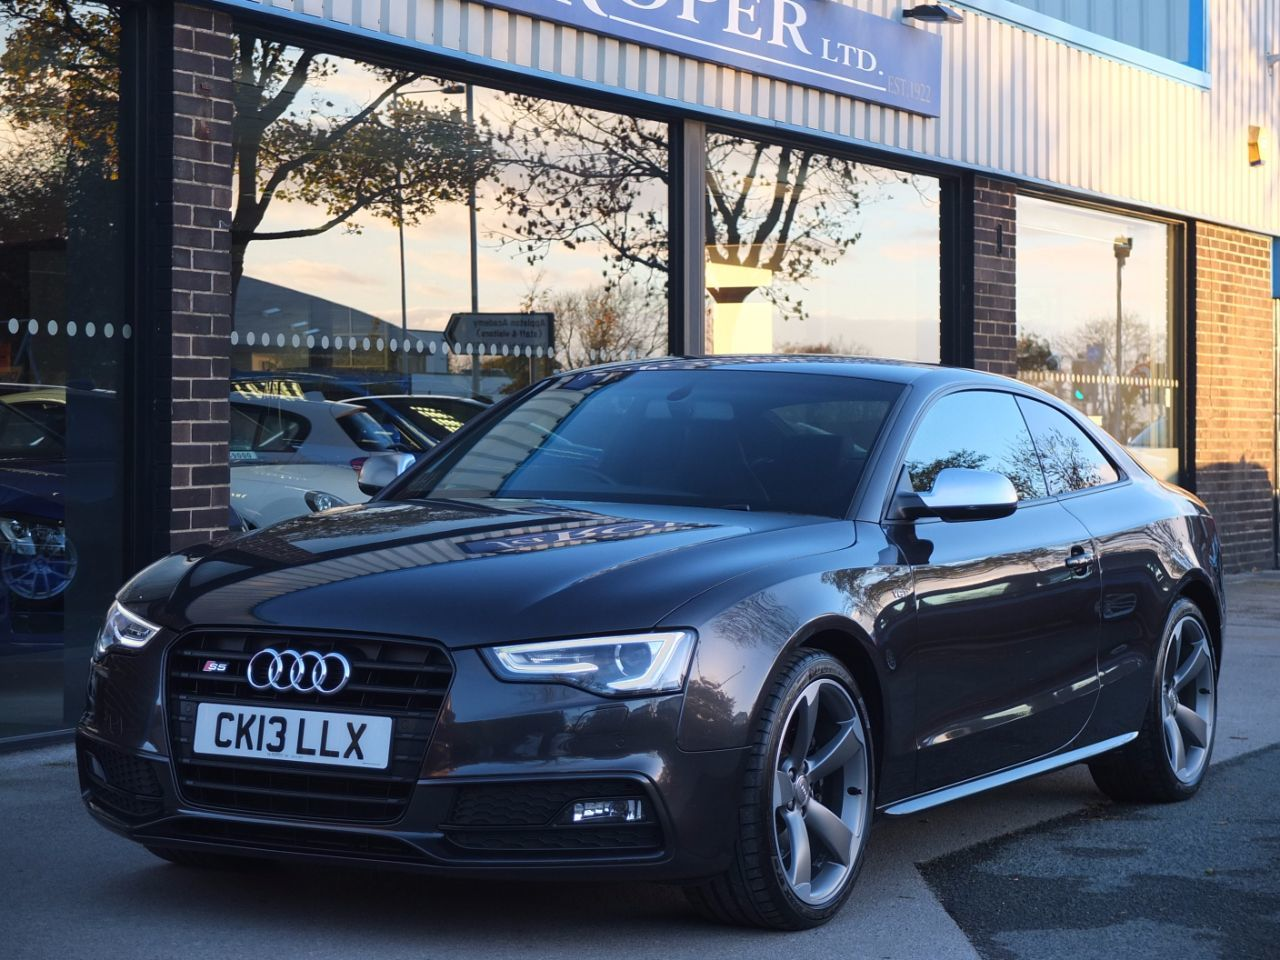 Audi A5 3.0 S5 Coupe quattro Black Edition S Tronic 333ps Coupe Petrol Lava Grey MetallicAudi A5 3.0 S5 Coupe quattro Black Edition S Tronic 333ps Coupe Petrol Lava Grey Metallic at fa Roper Ltd Bradford